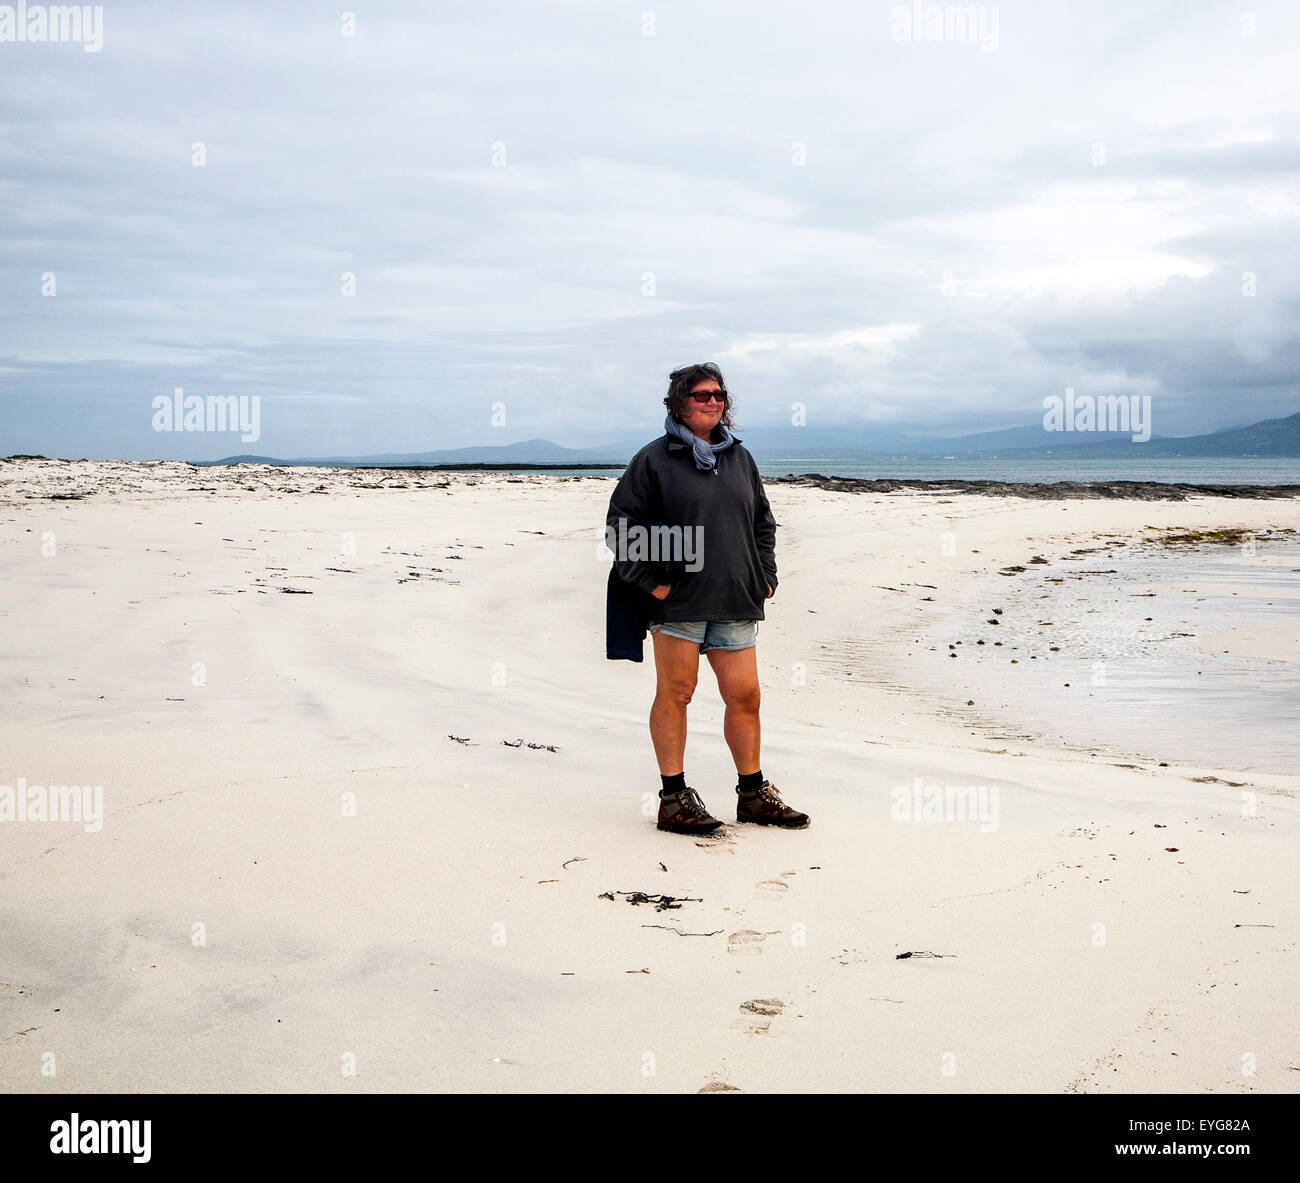 Woman standiing overcast sky sandy beach Eoligarry, Barra, Outer Hebrides, Scotland, UK - Stock Image